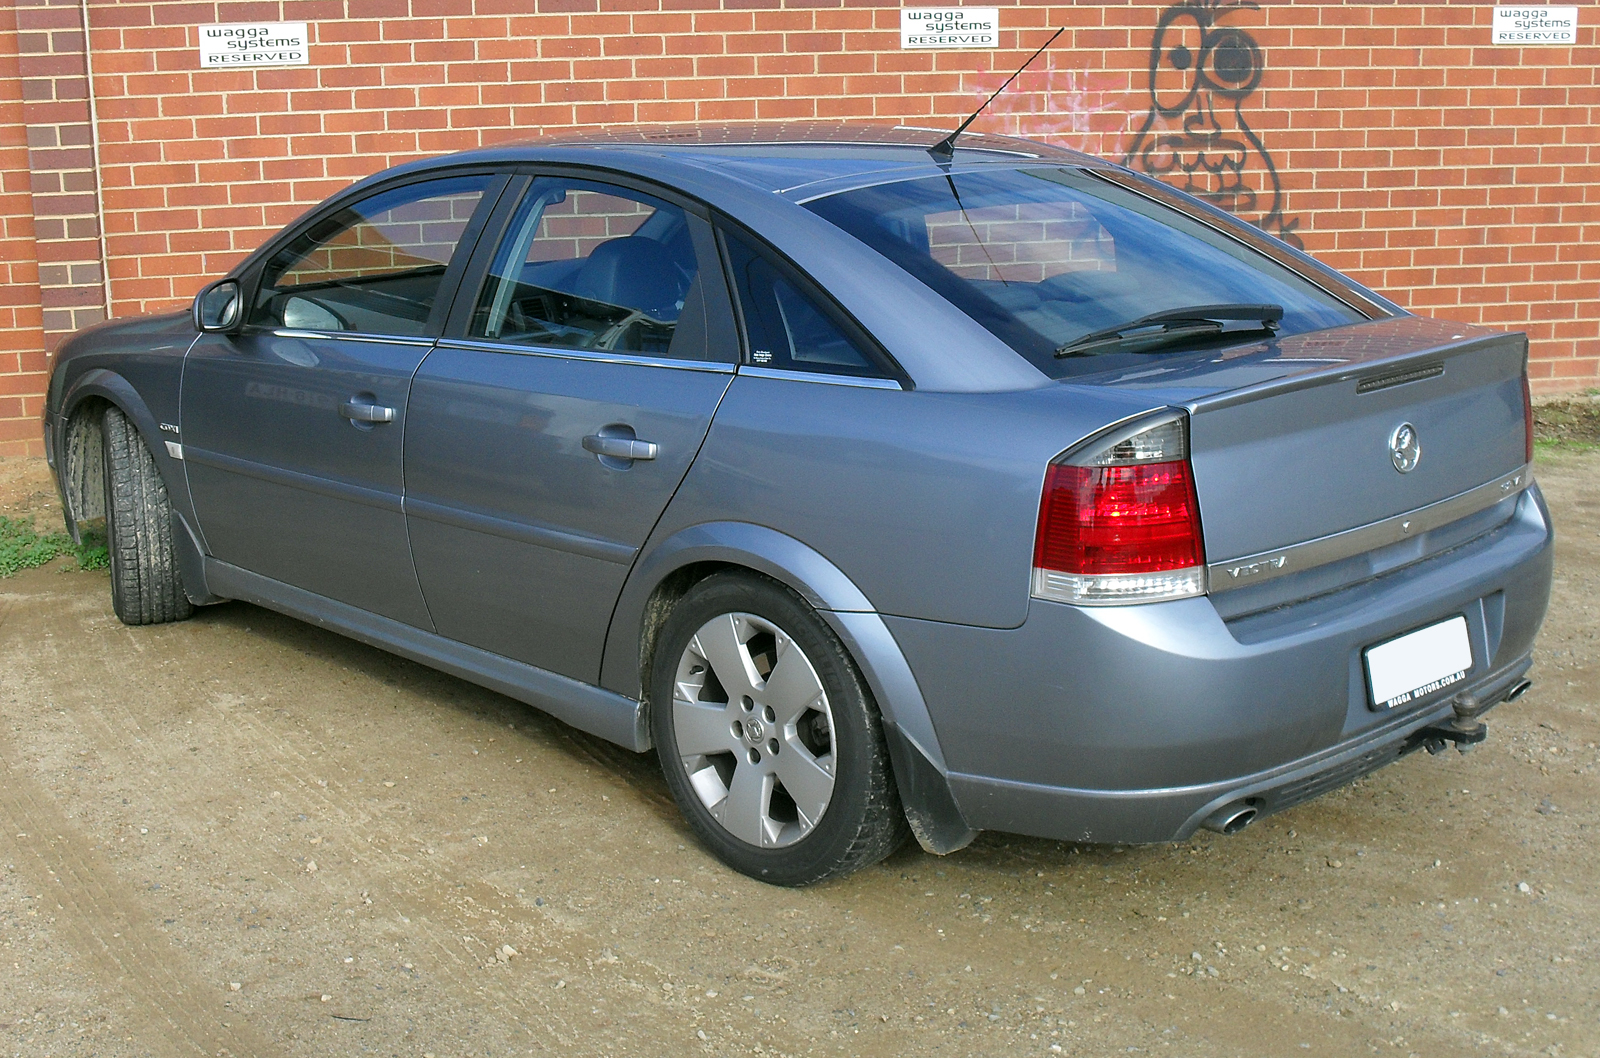 2005 Holden Vectra #6